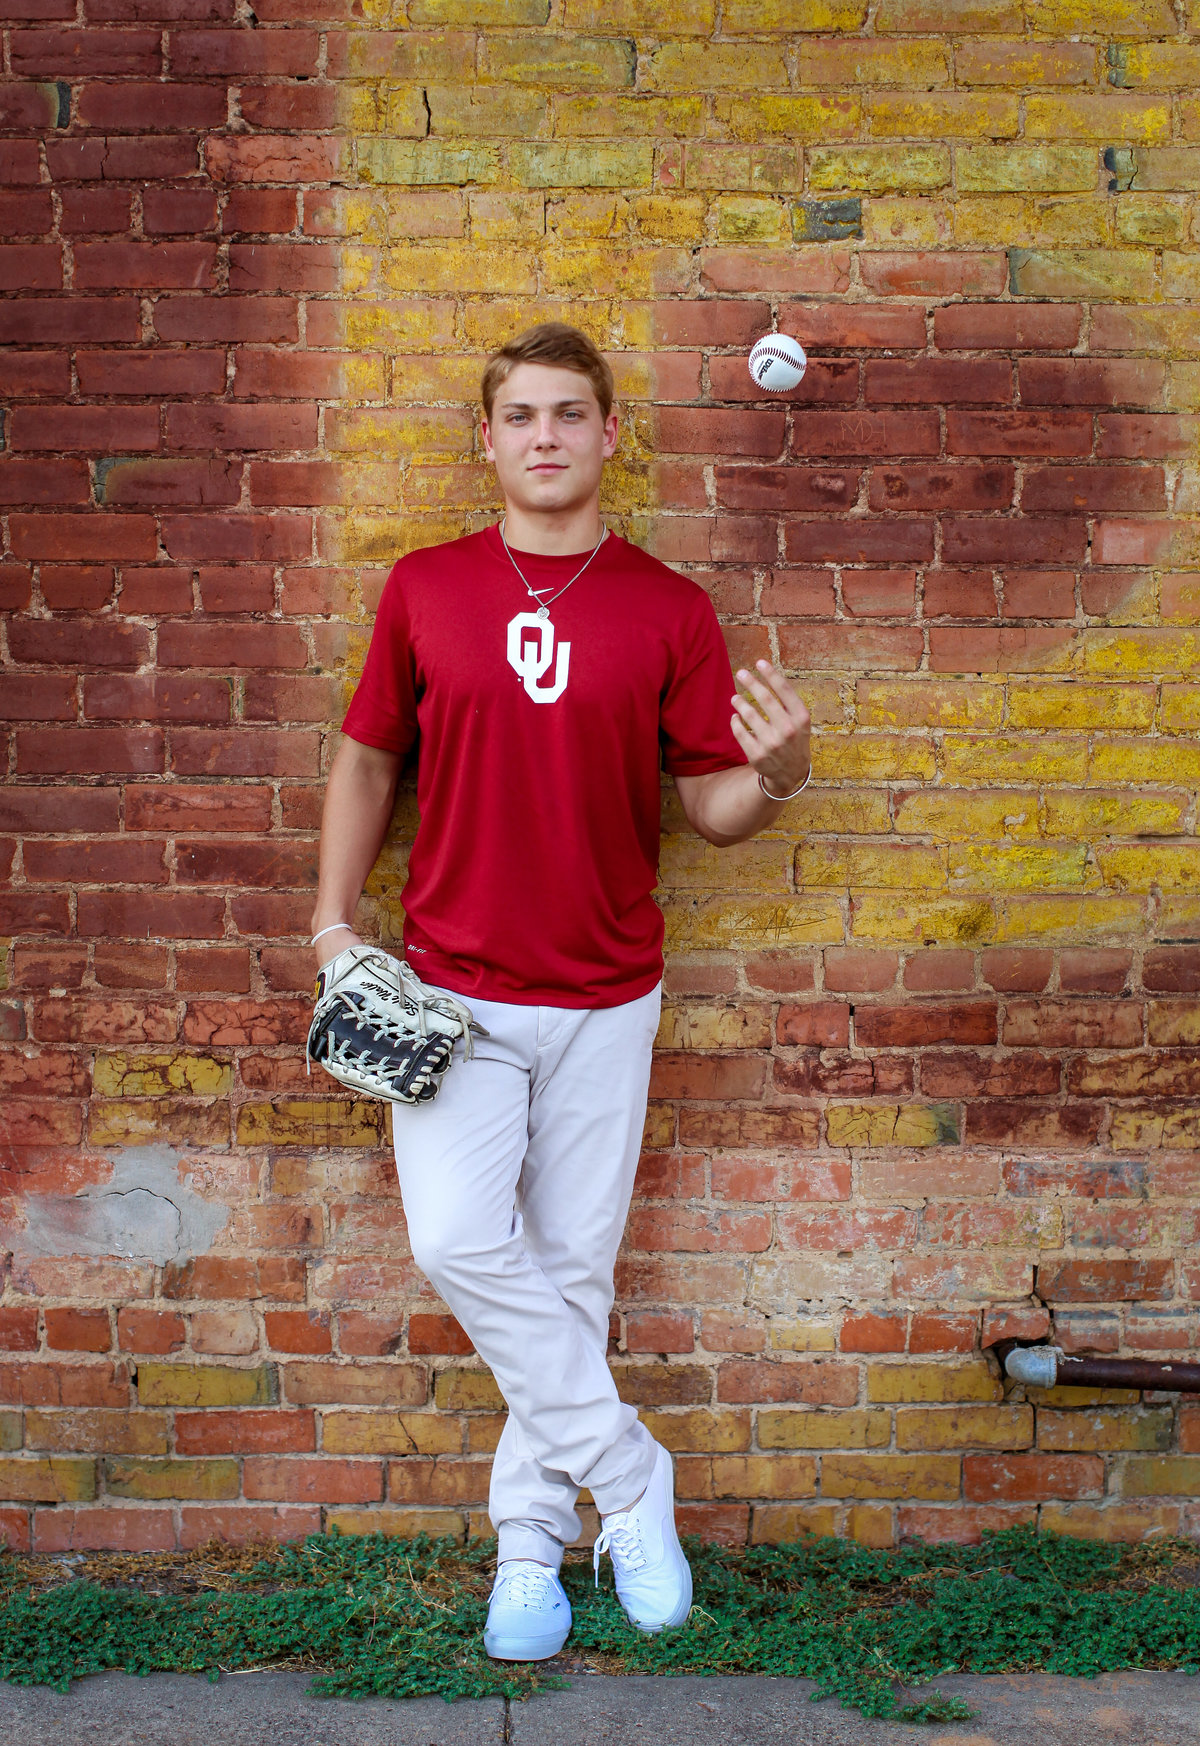 Steel Walker White Sox Senior Portrait in OU baseball uniform with ball and glove